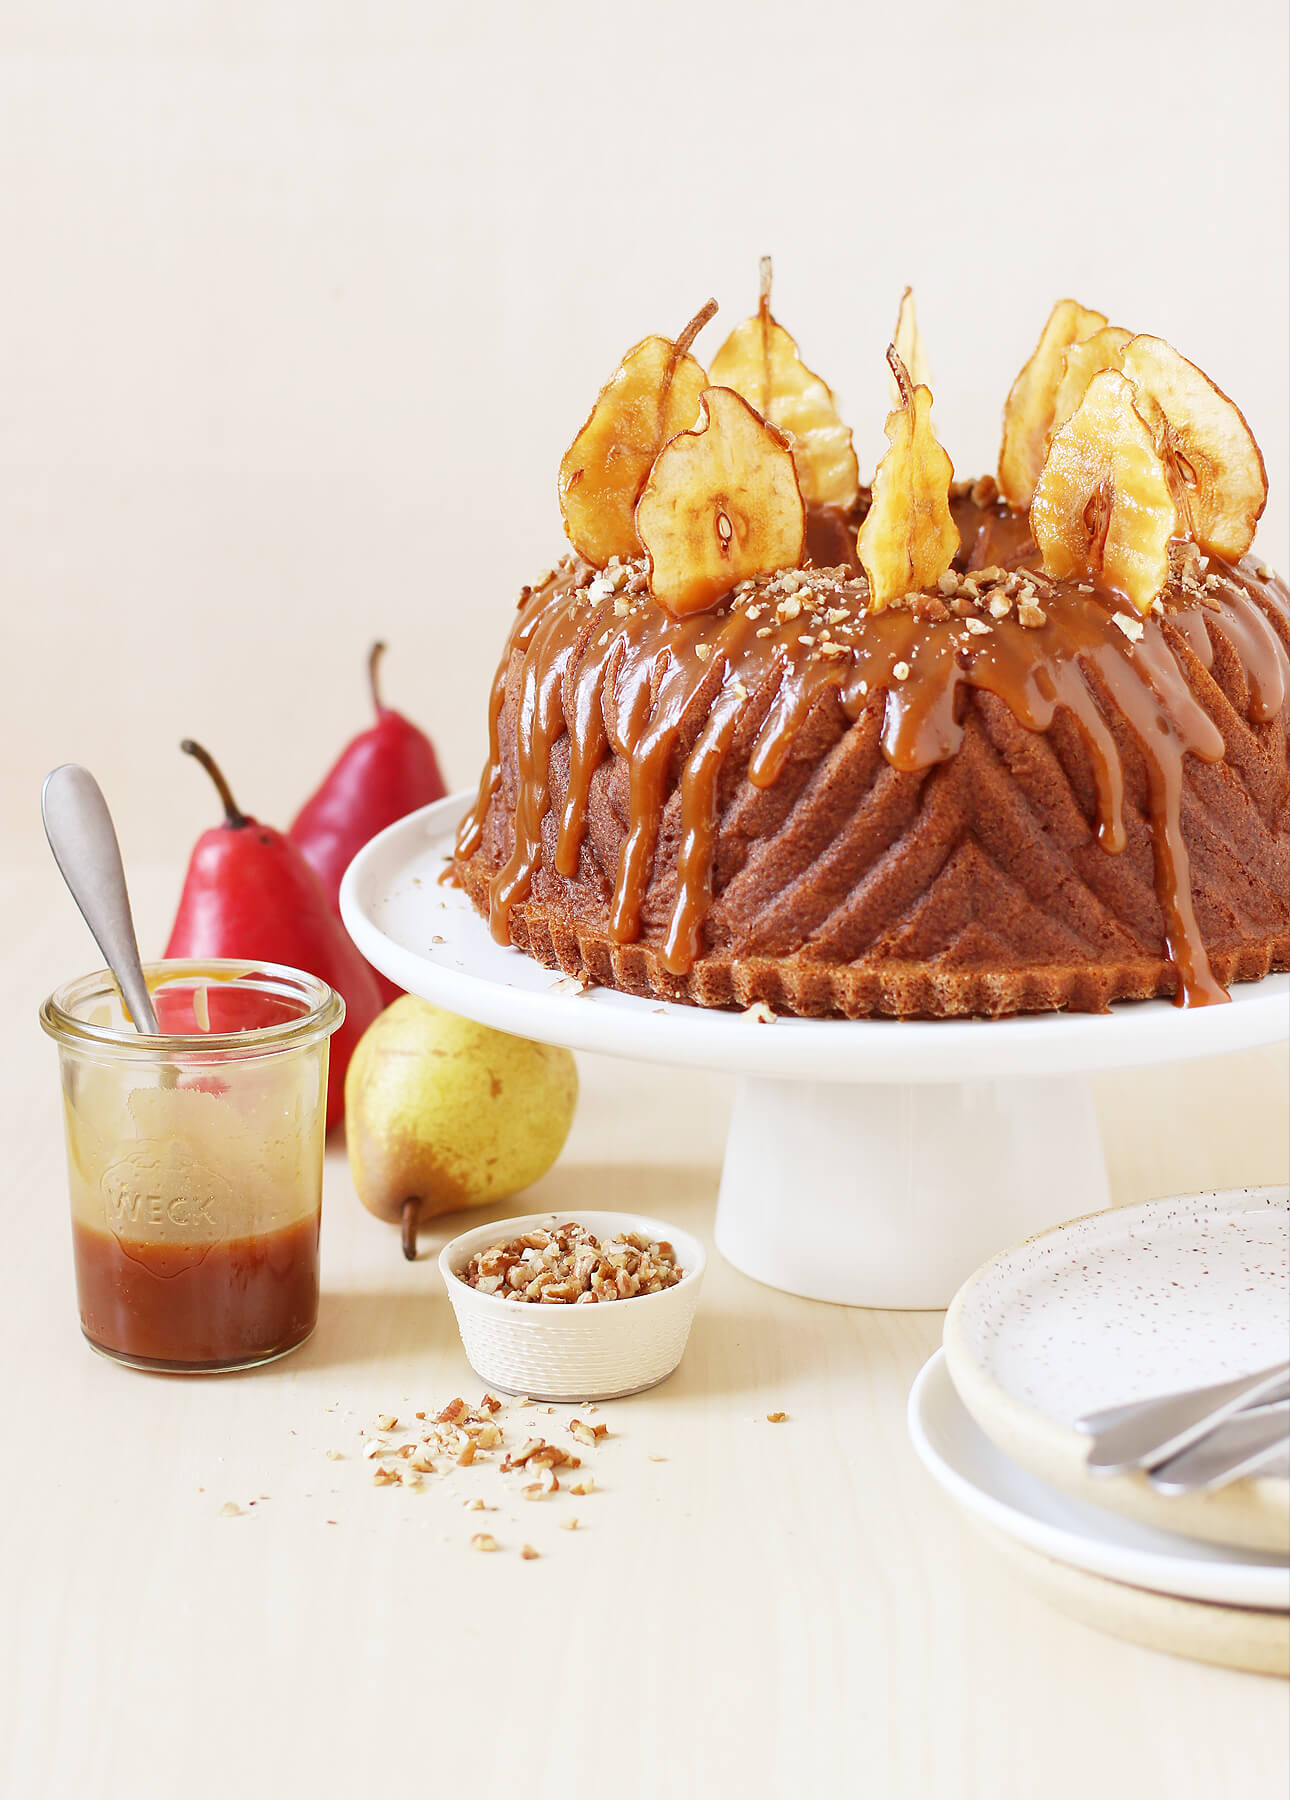 spiced pear bundt cake with salted caramel sauce and homemade pear crisps